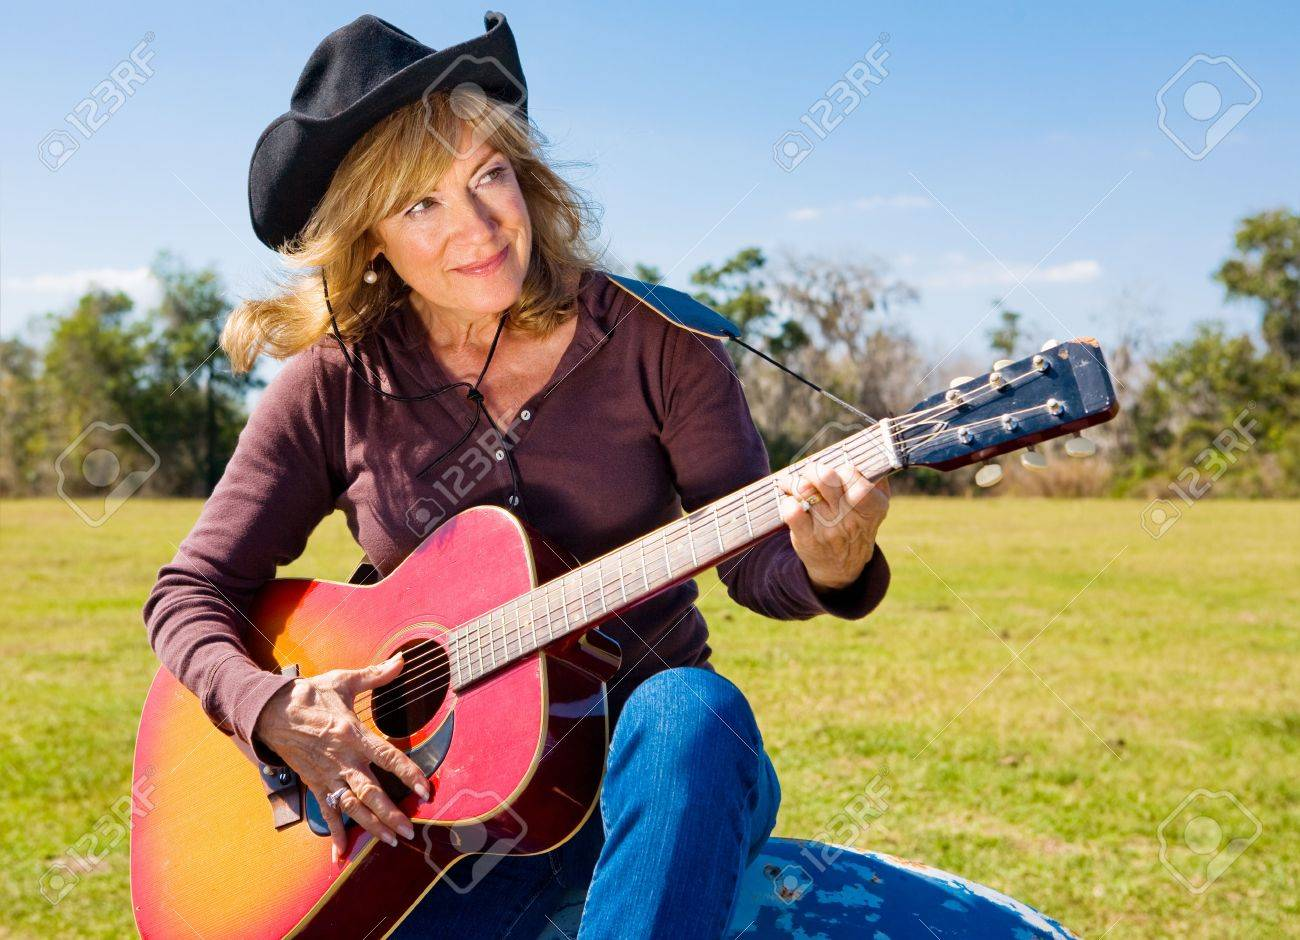 Beautiful mature singing cowgirl plays a song on her guitar. Stock Photo - 3206456